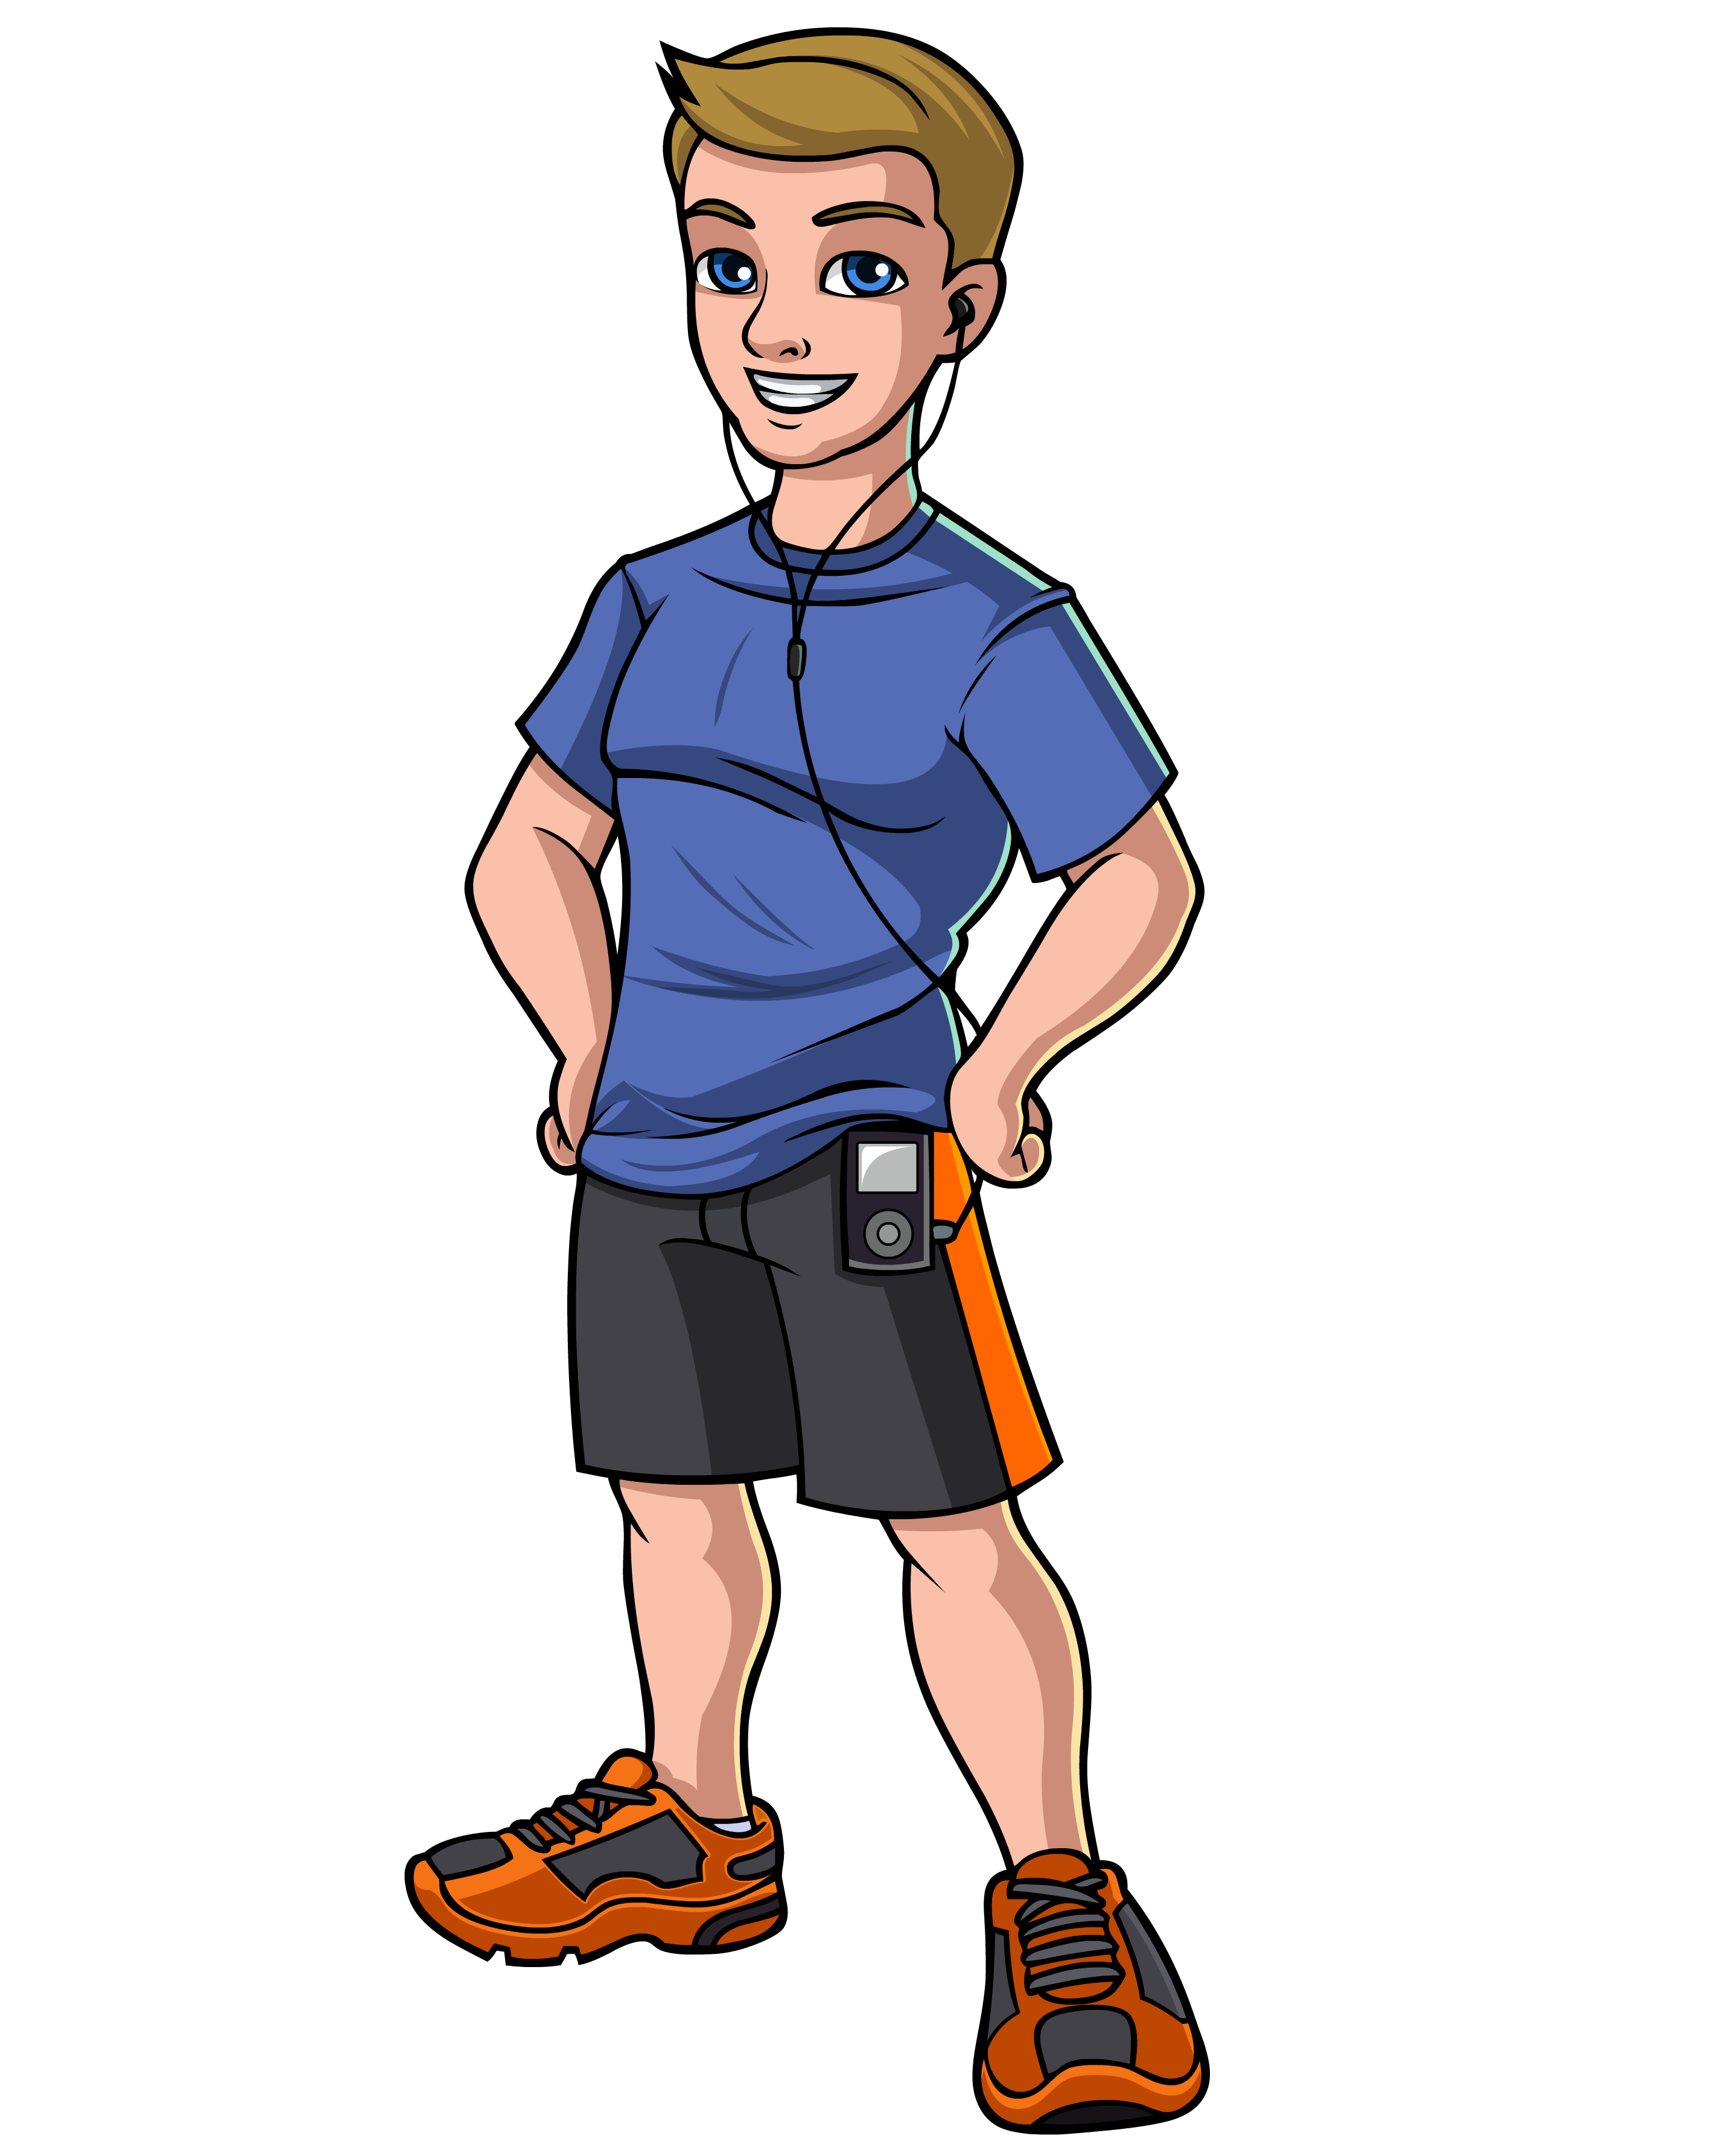 Gym clipart gym guy. Cartoon graphic i workout